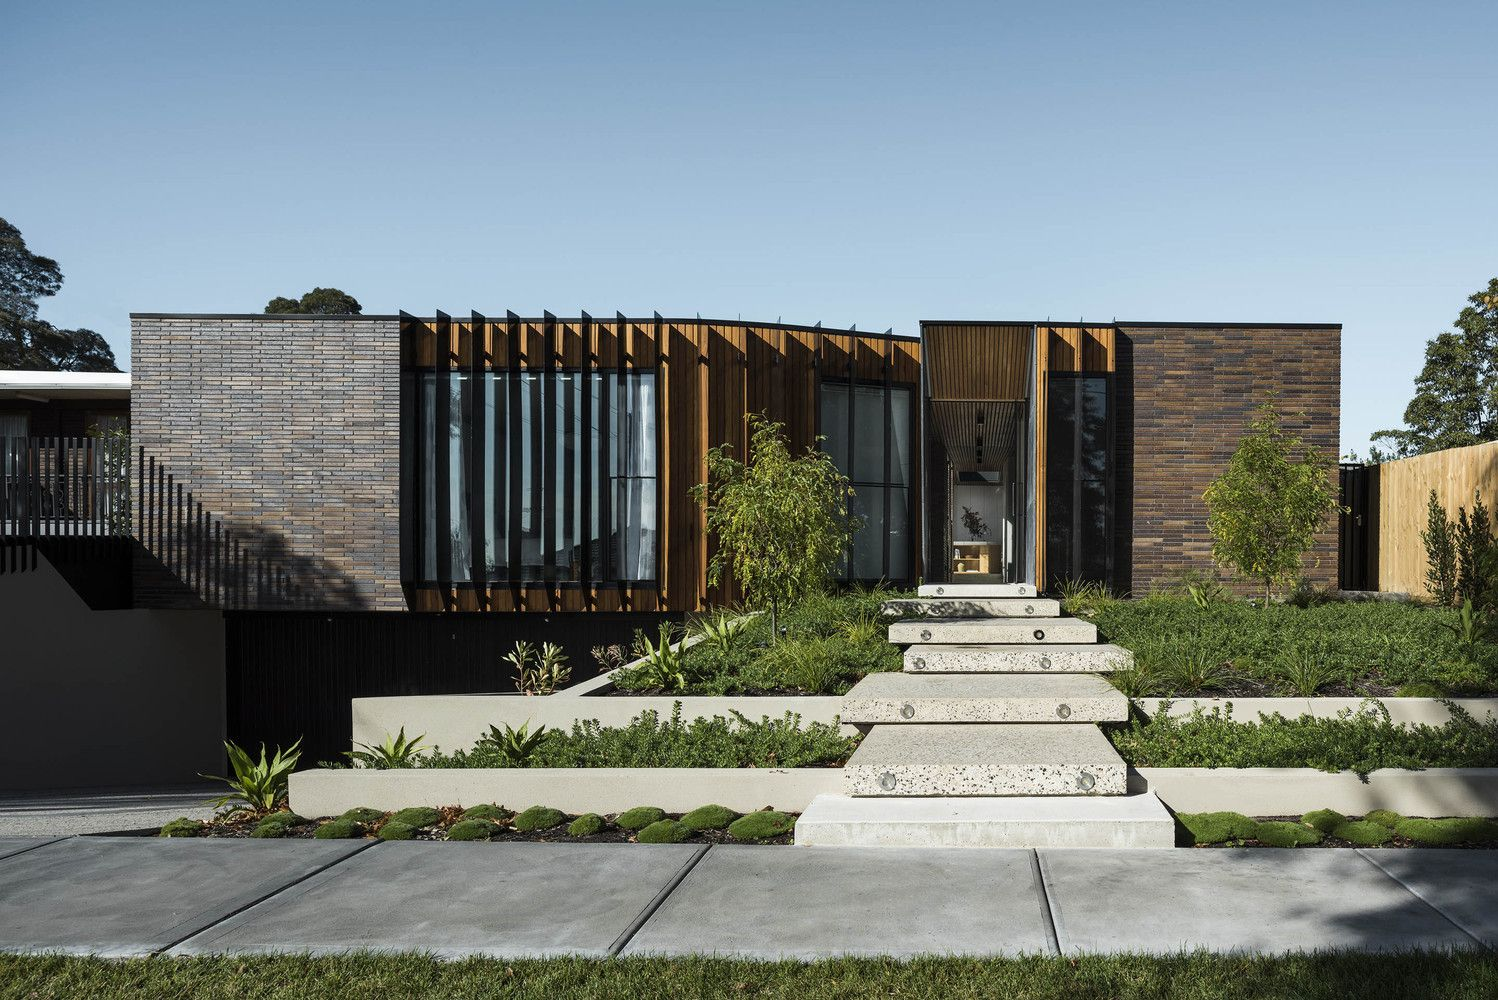 gallery of courtyard house figr architecture design 3 gallery of courtyard house figr architecture design 3